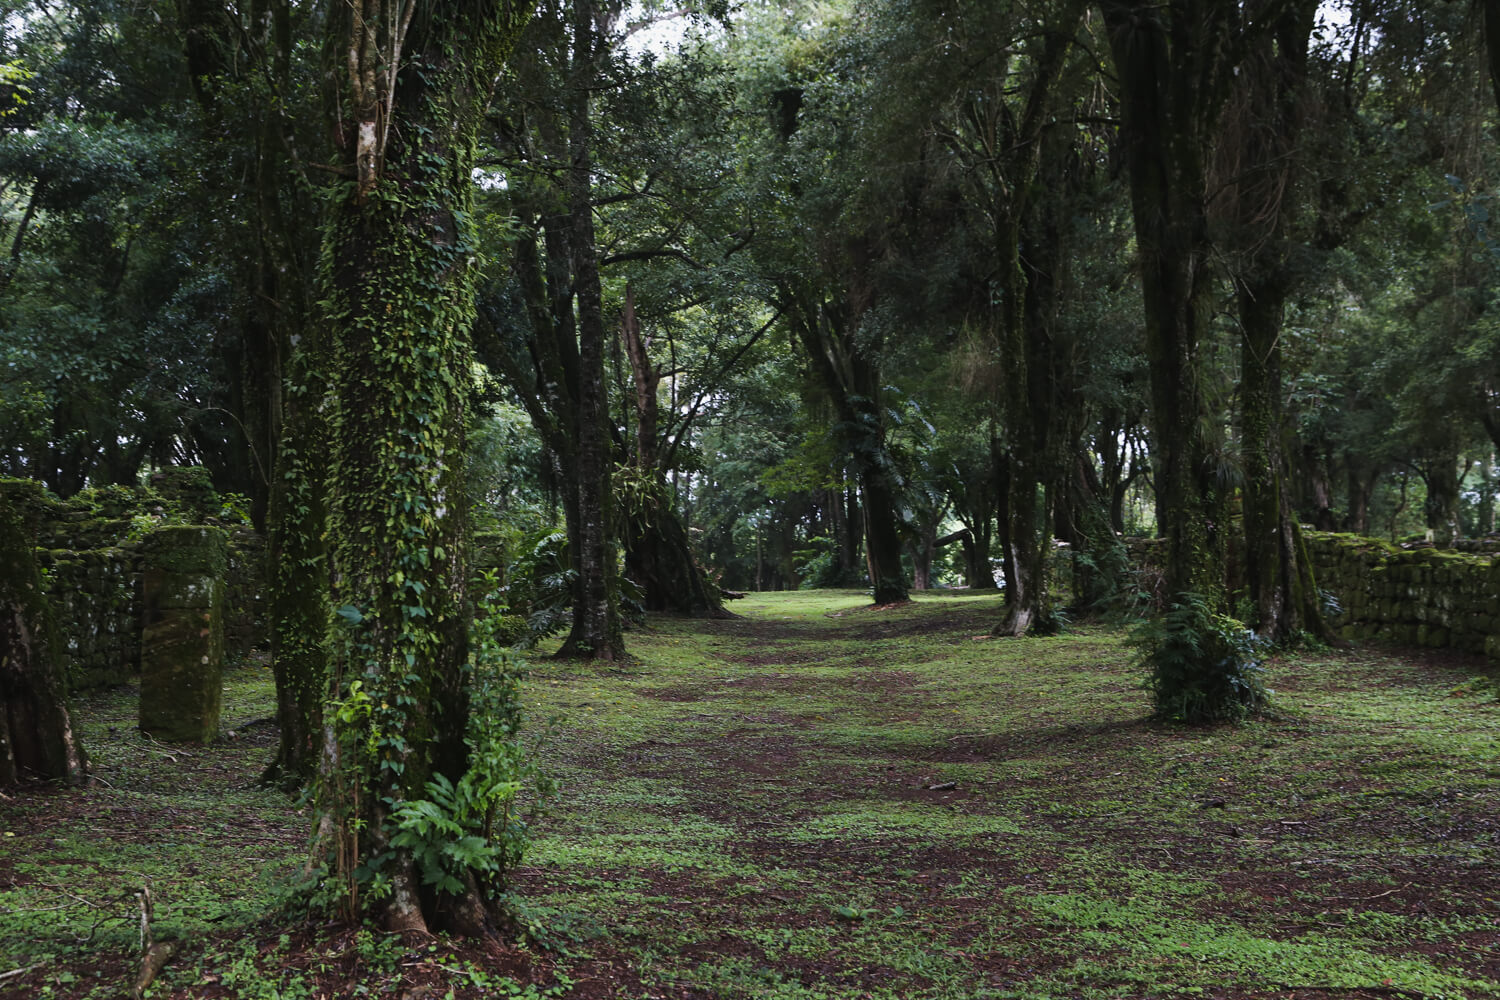 A path winds through the lush green jungle in Northeast Argentina